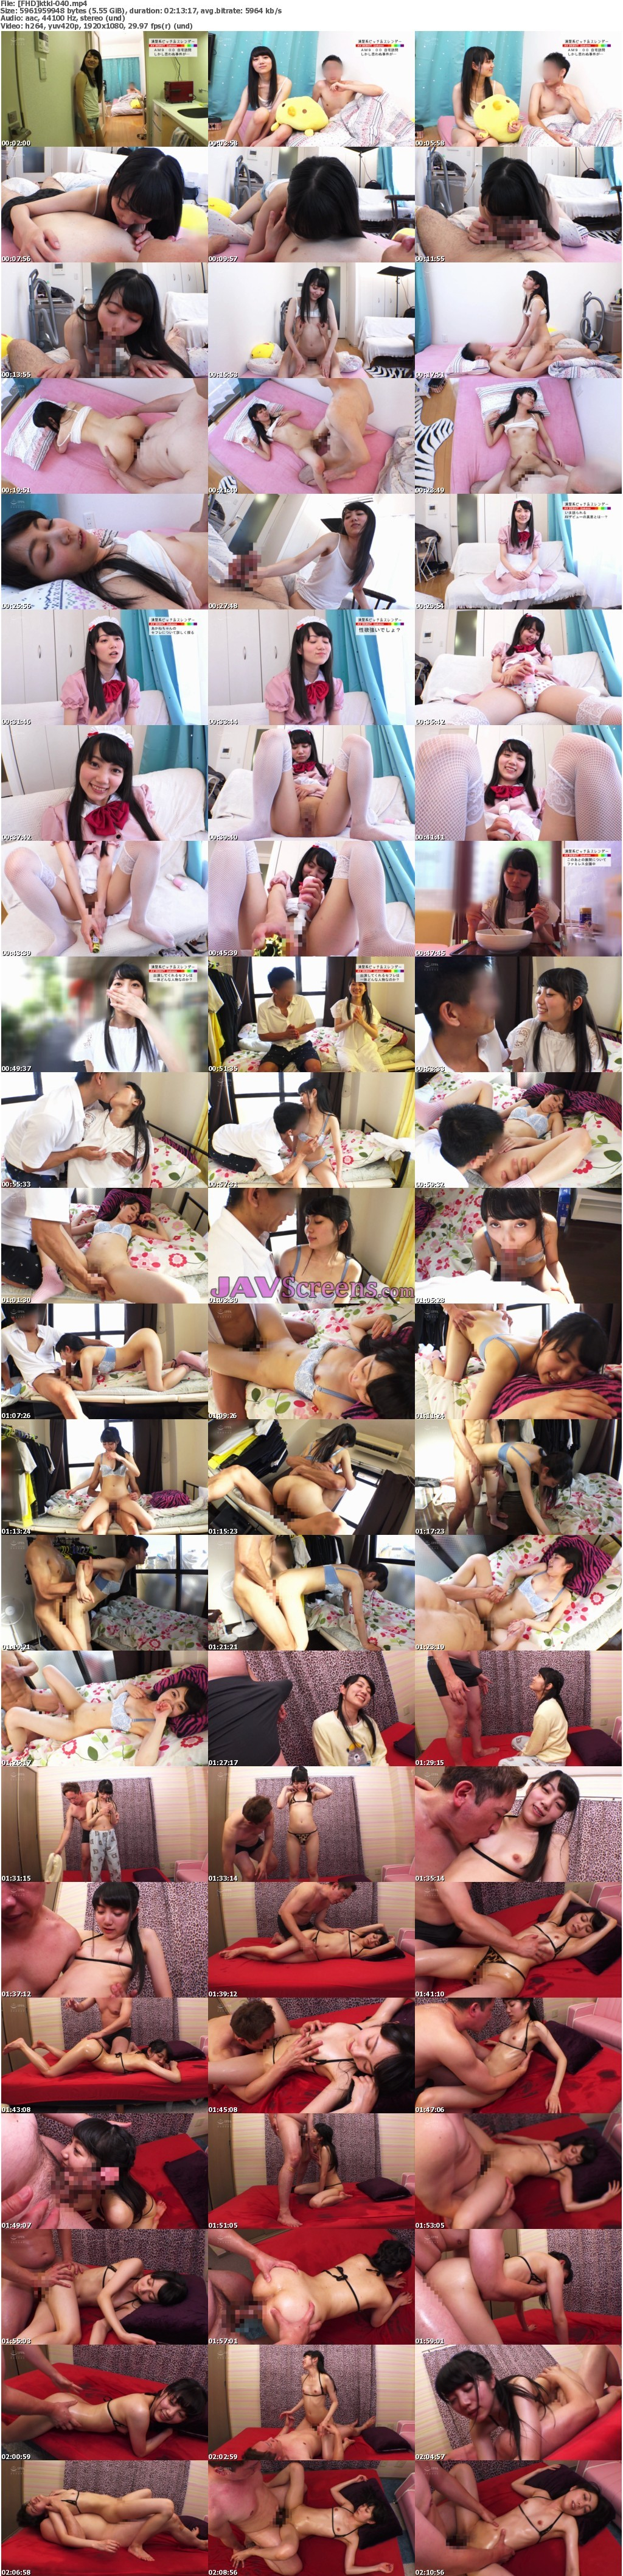 KTKL-040.jpg - JAV Screenshot